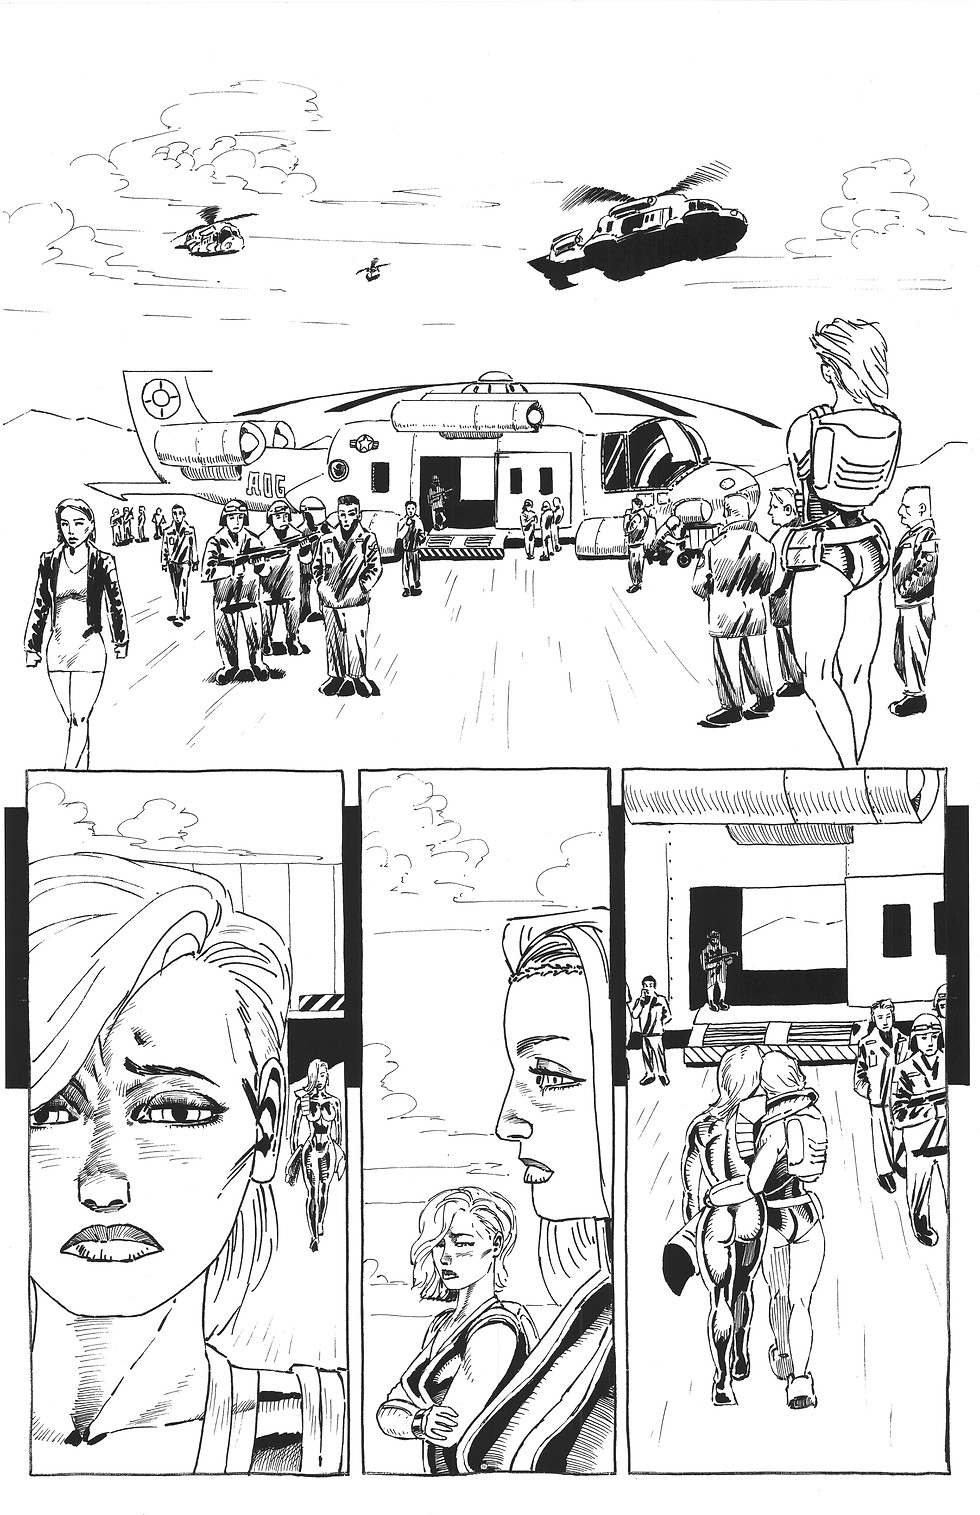 Live Wire Issue 1 (pages 11-14).jpg